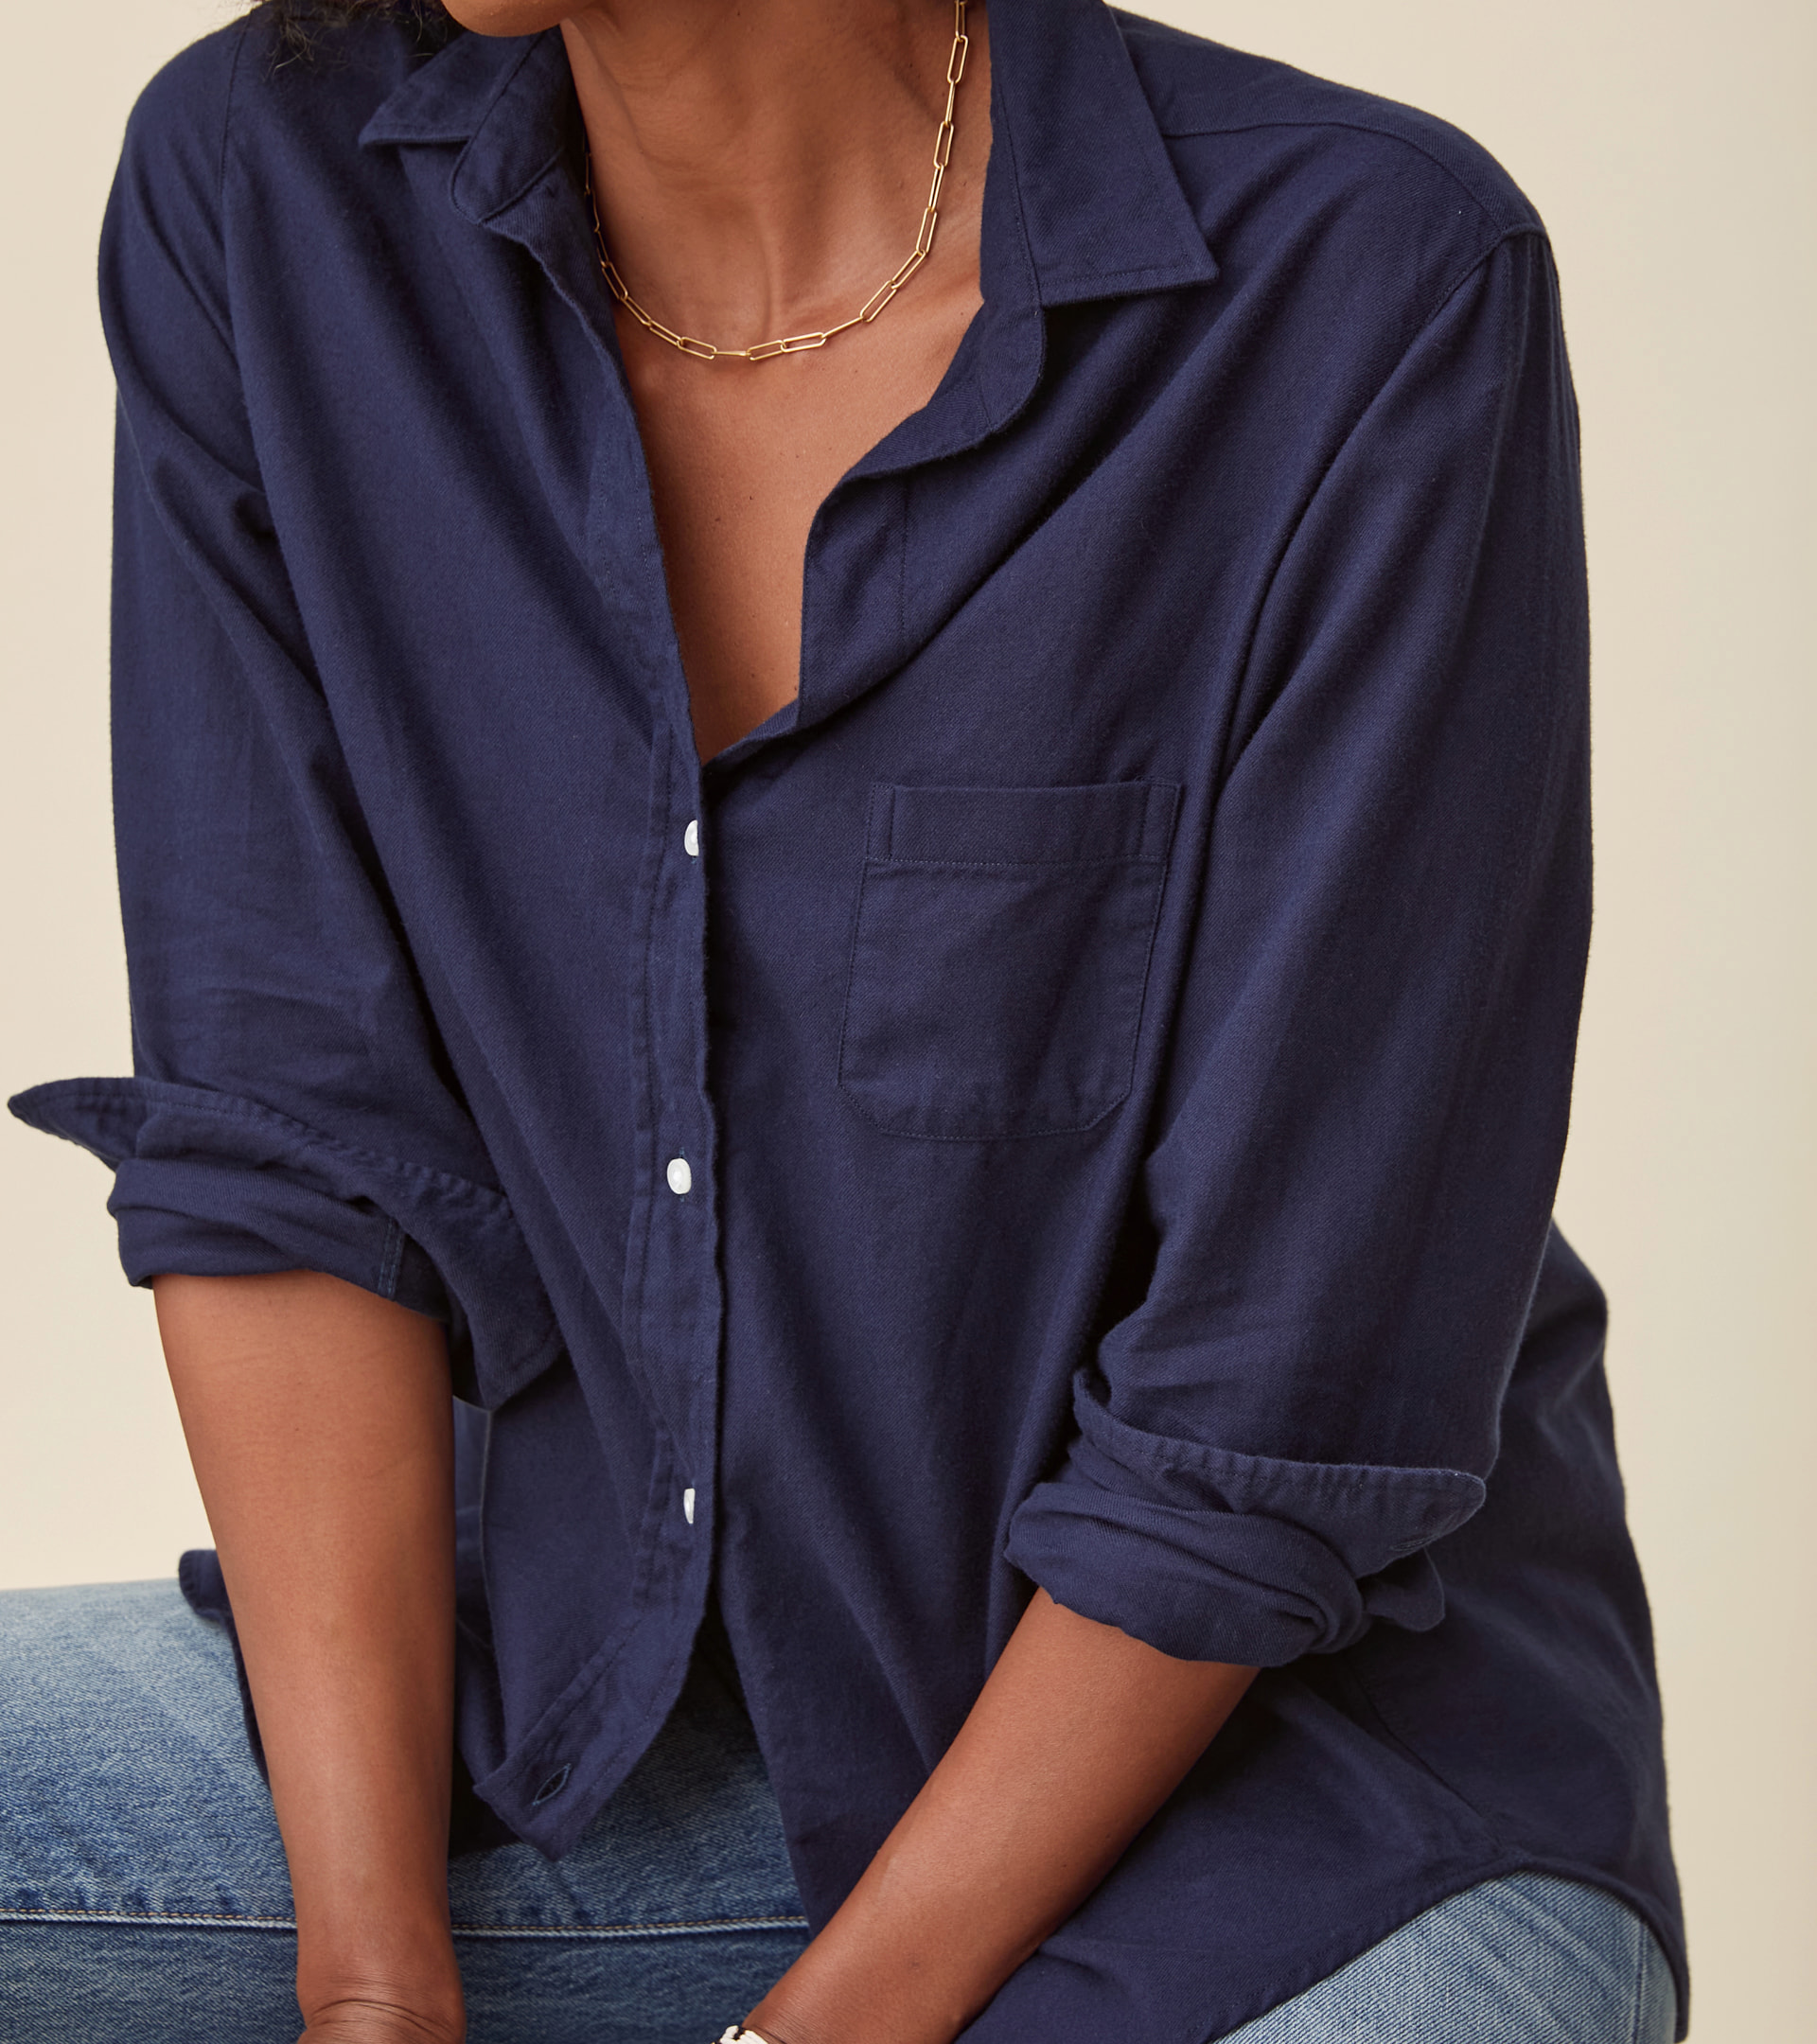 The Hero Button-Up Shirt Navy, Feathered Flannel view 1